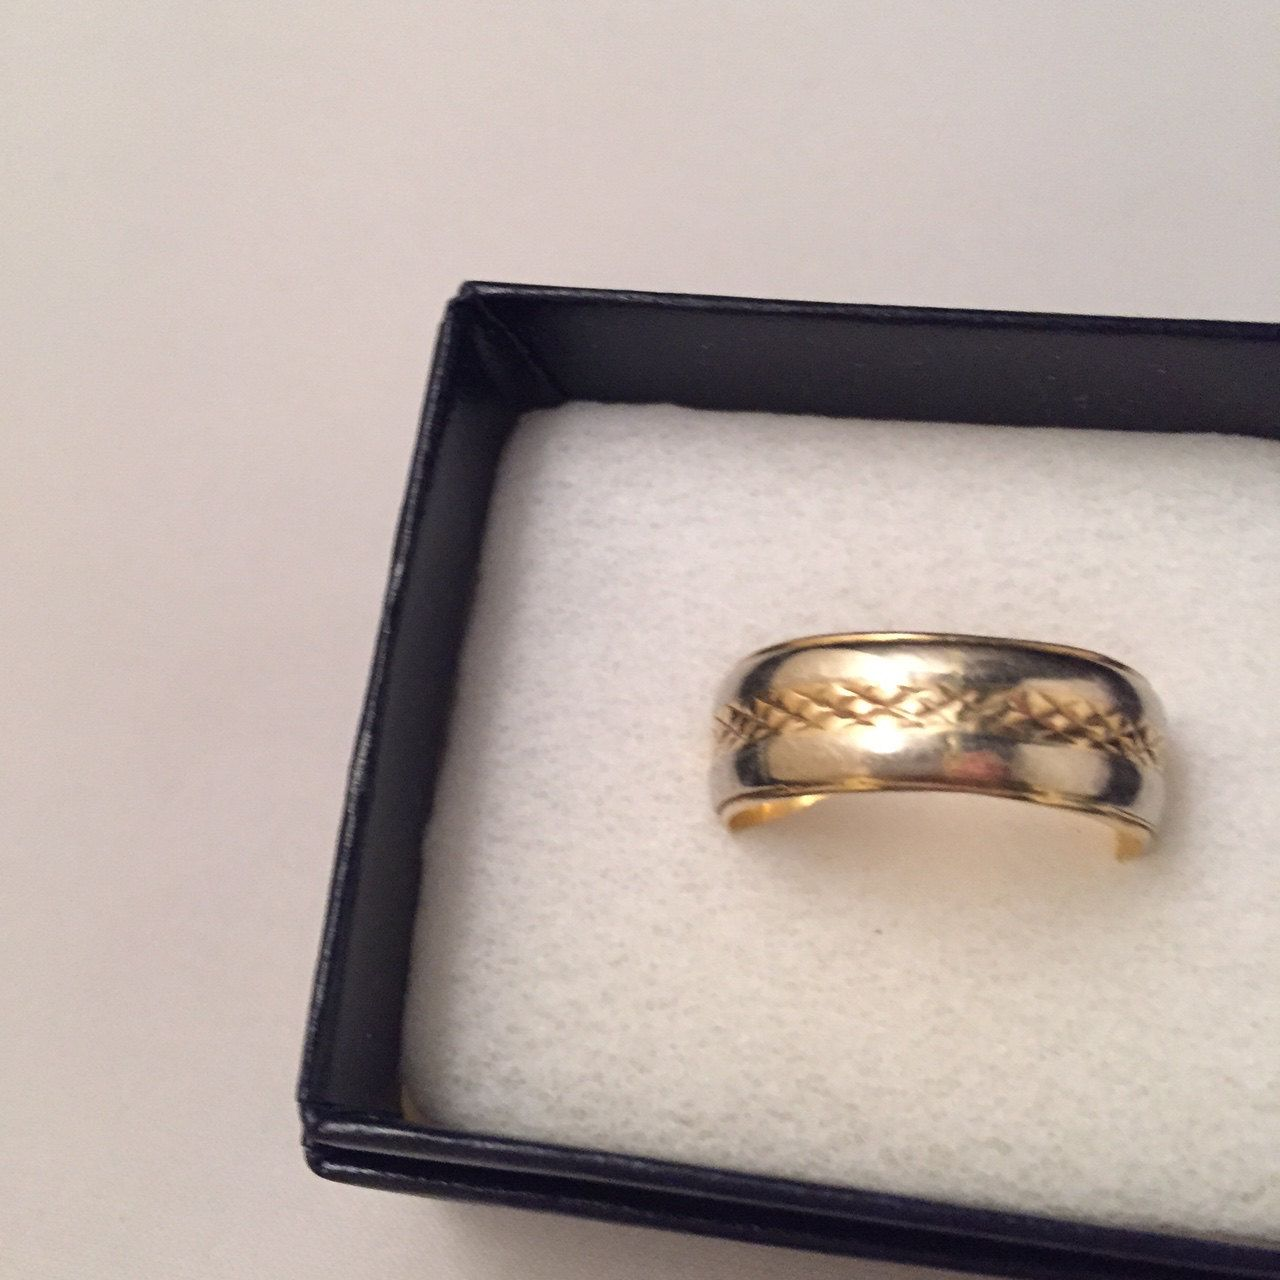 Wedding Band Ring 14 K Vintage Gold Two Tone Ring Signed